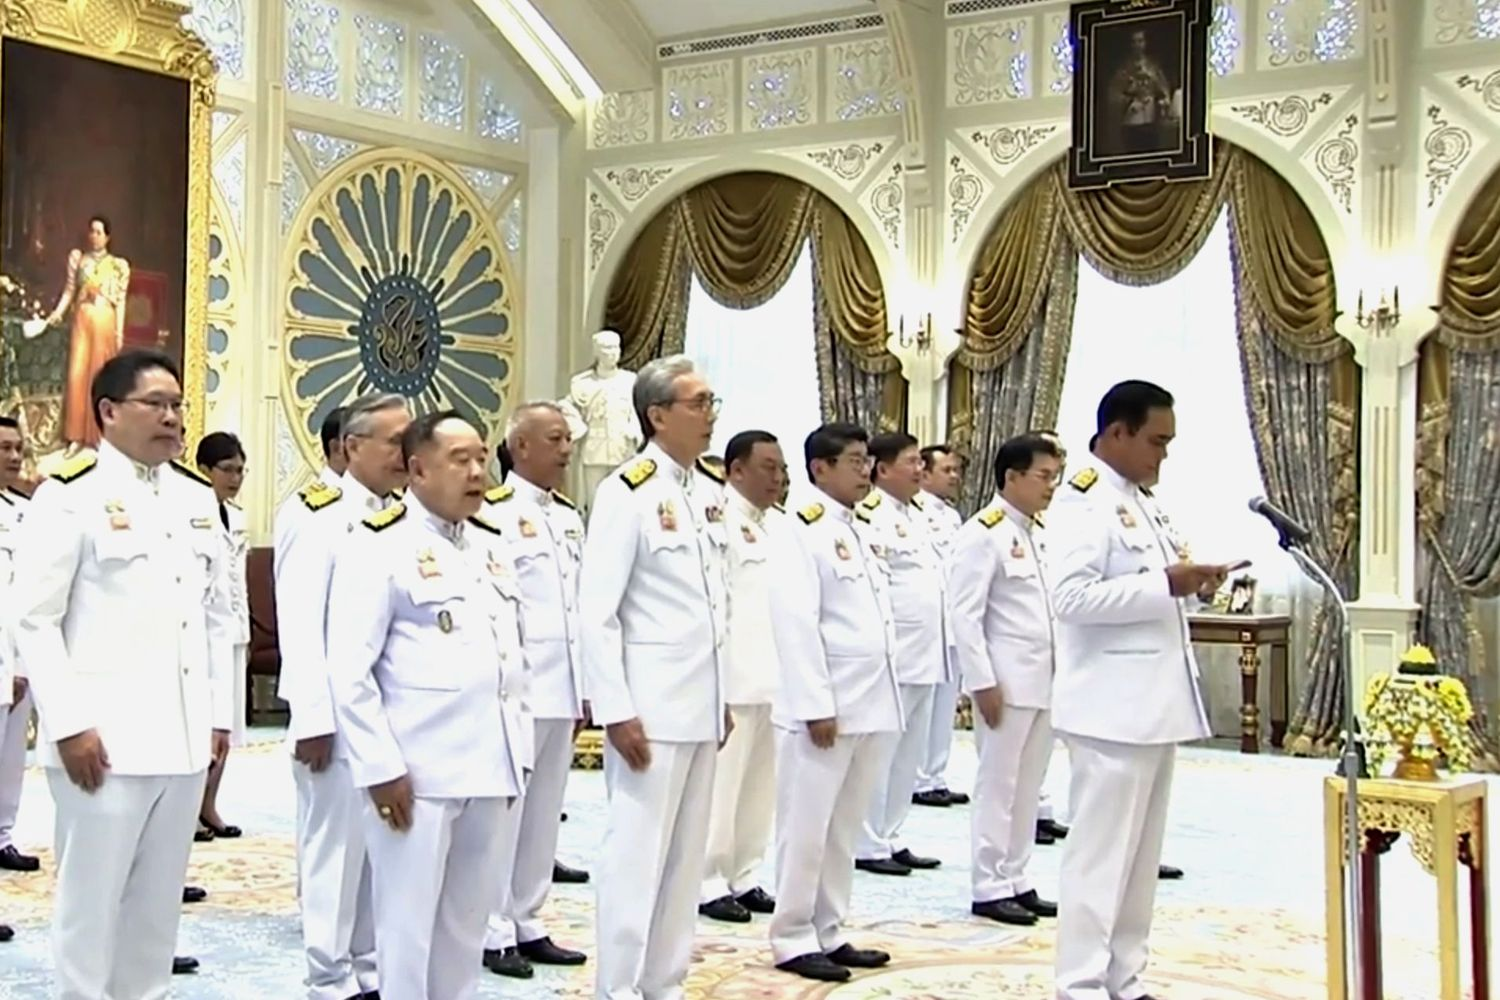 Cabinet ministers swear an oath before Their Majesties at the Dusit Palace on July 16. (Photo taken from TV Pool)